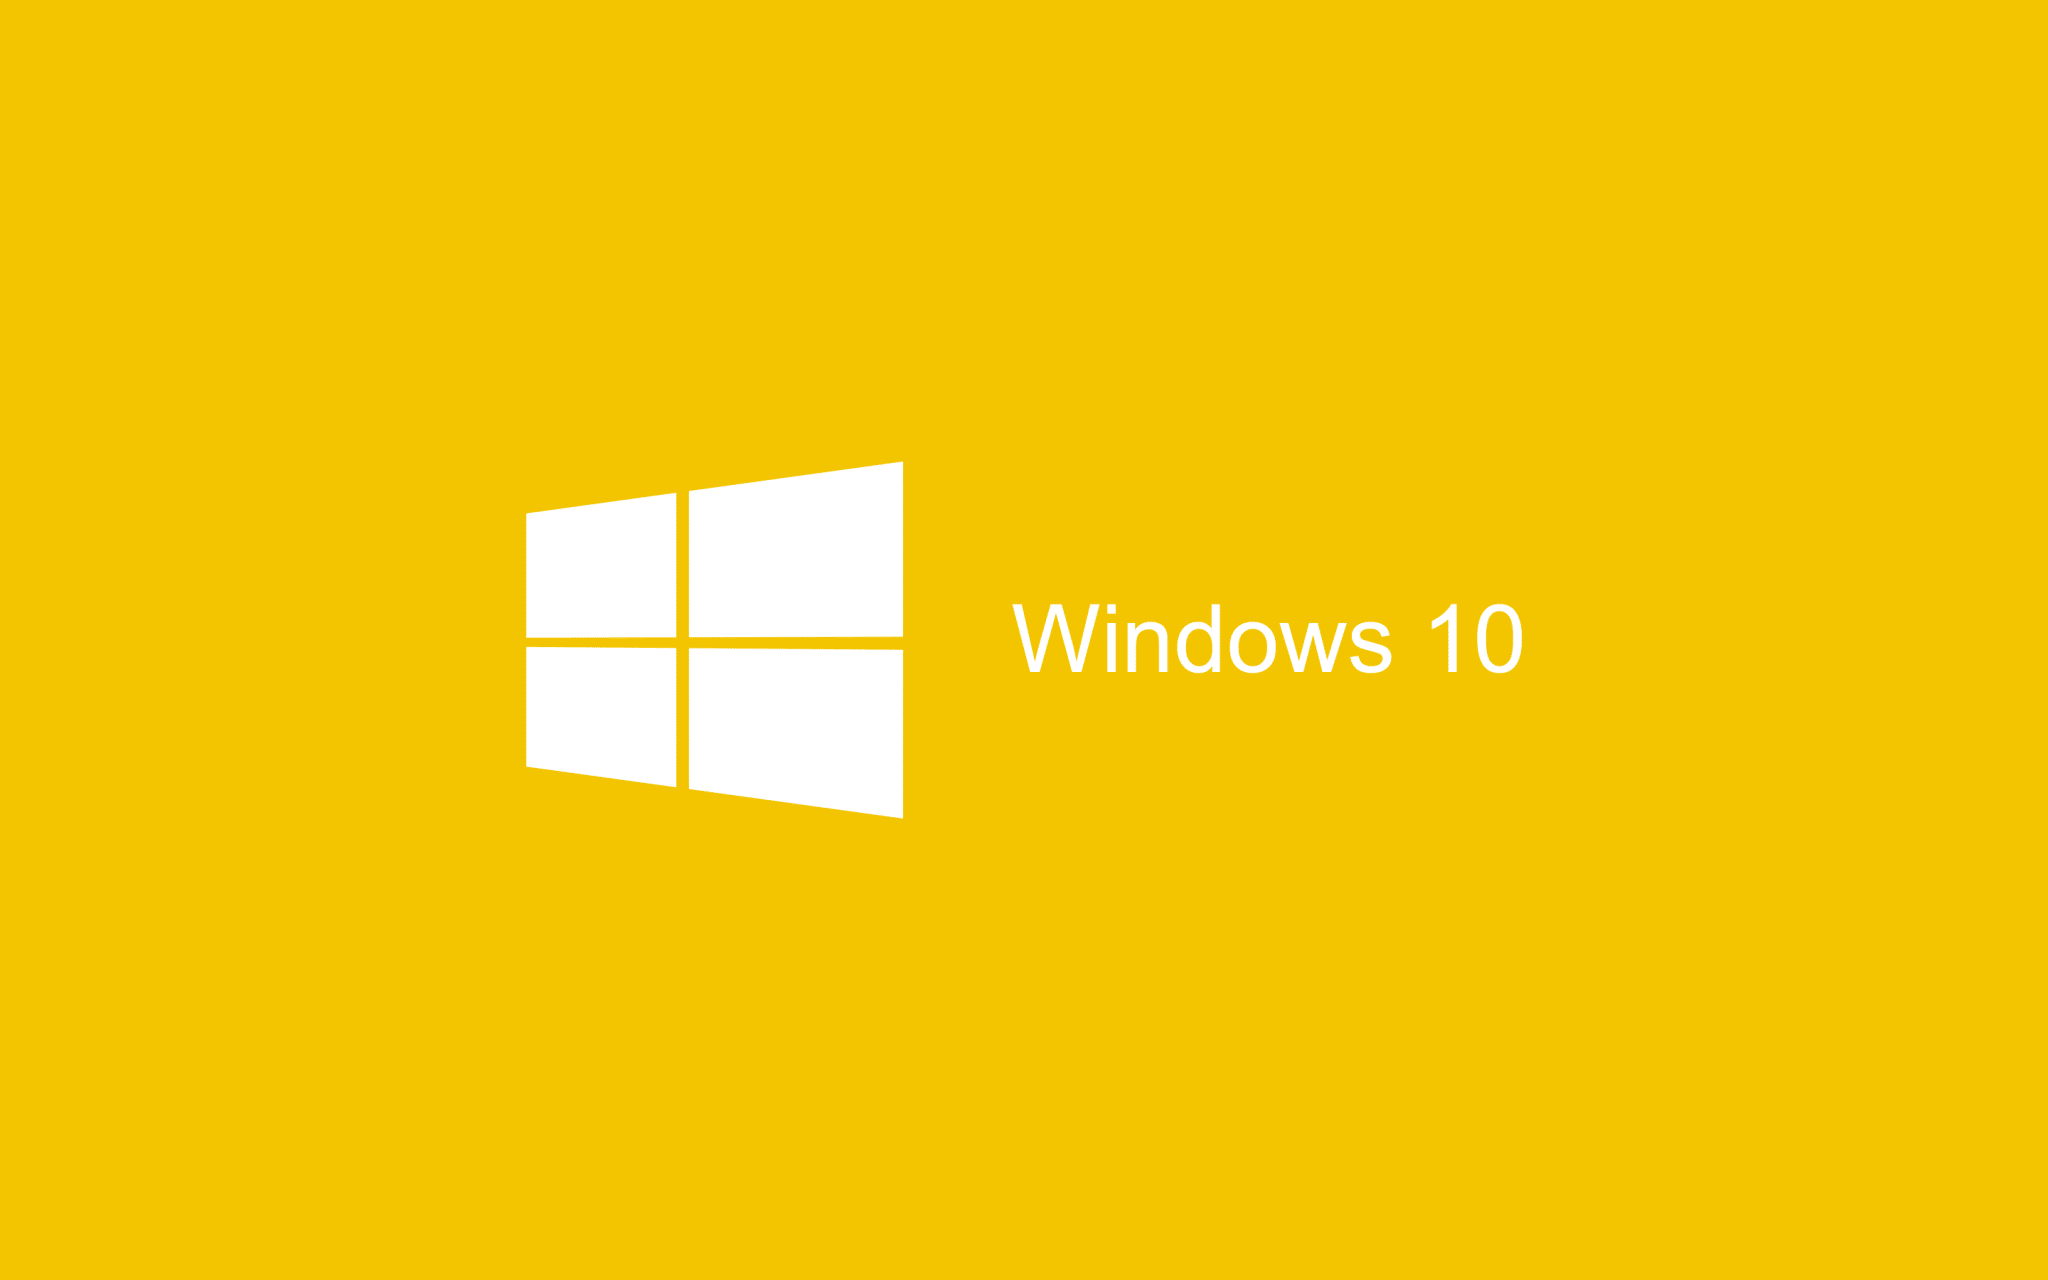 Yellow flat Wallpaper Windows 10 HD 2880x1800